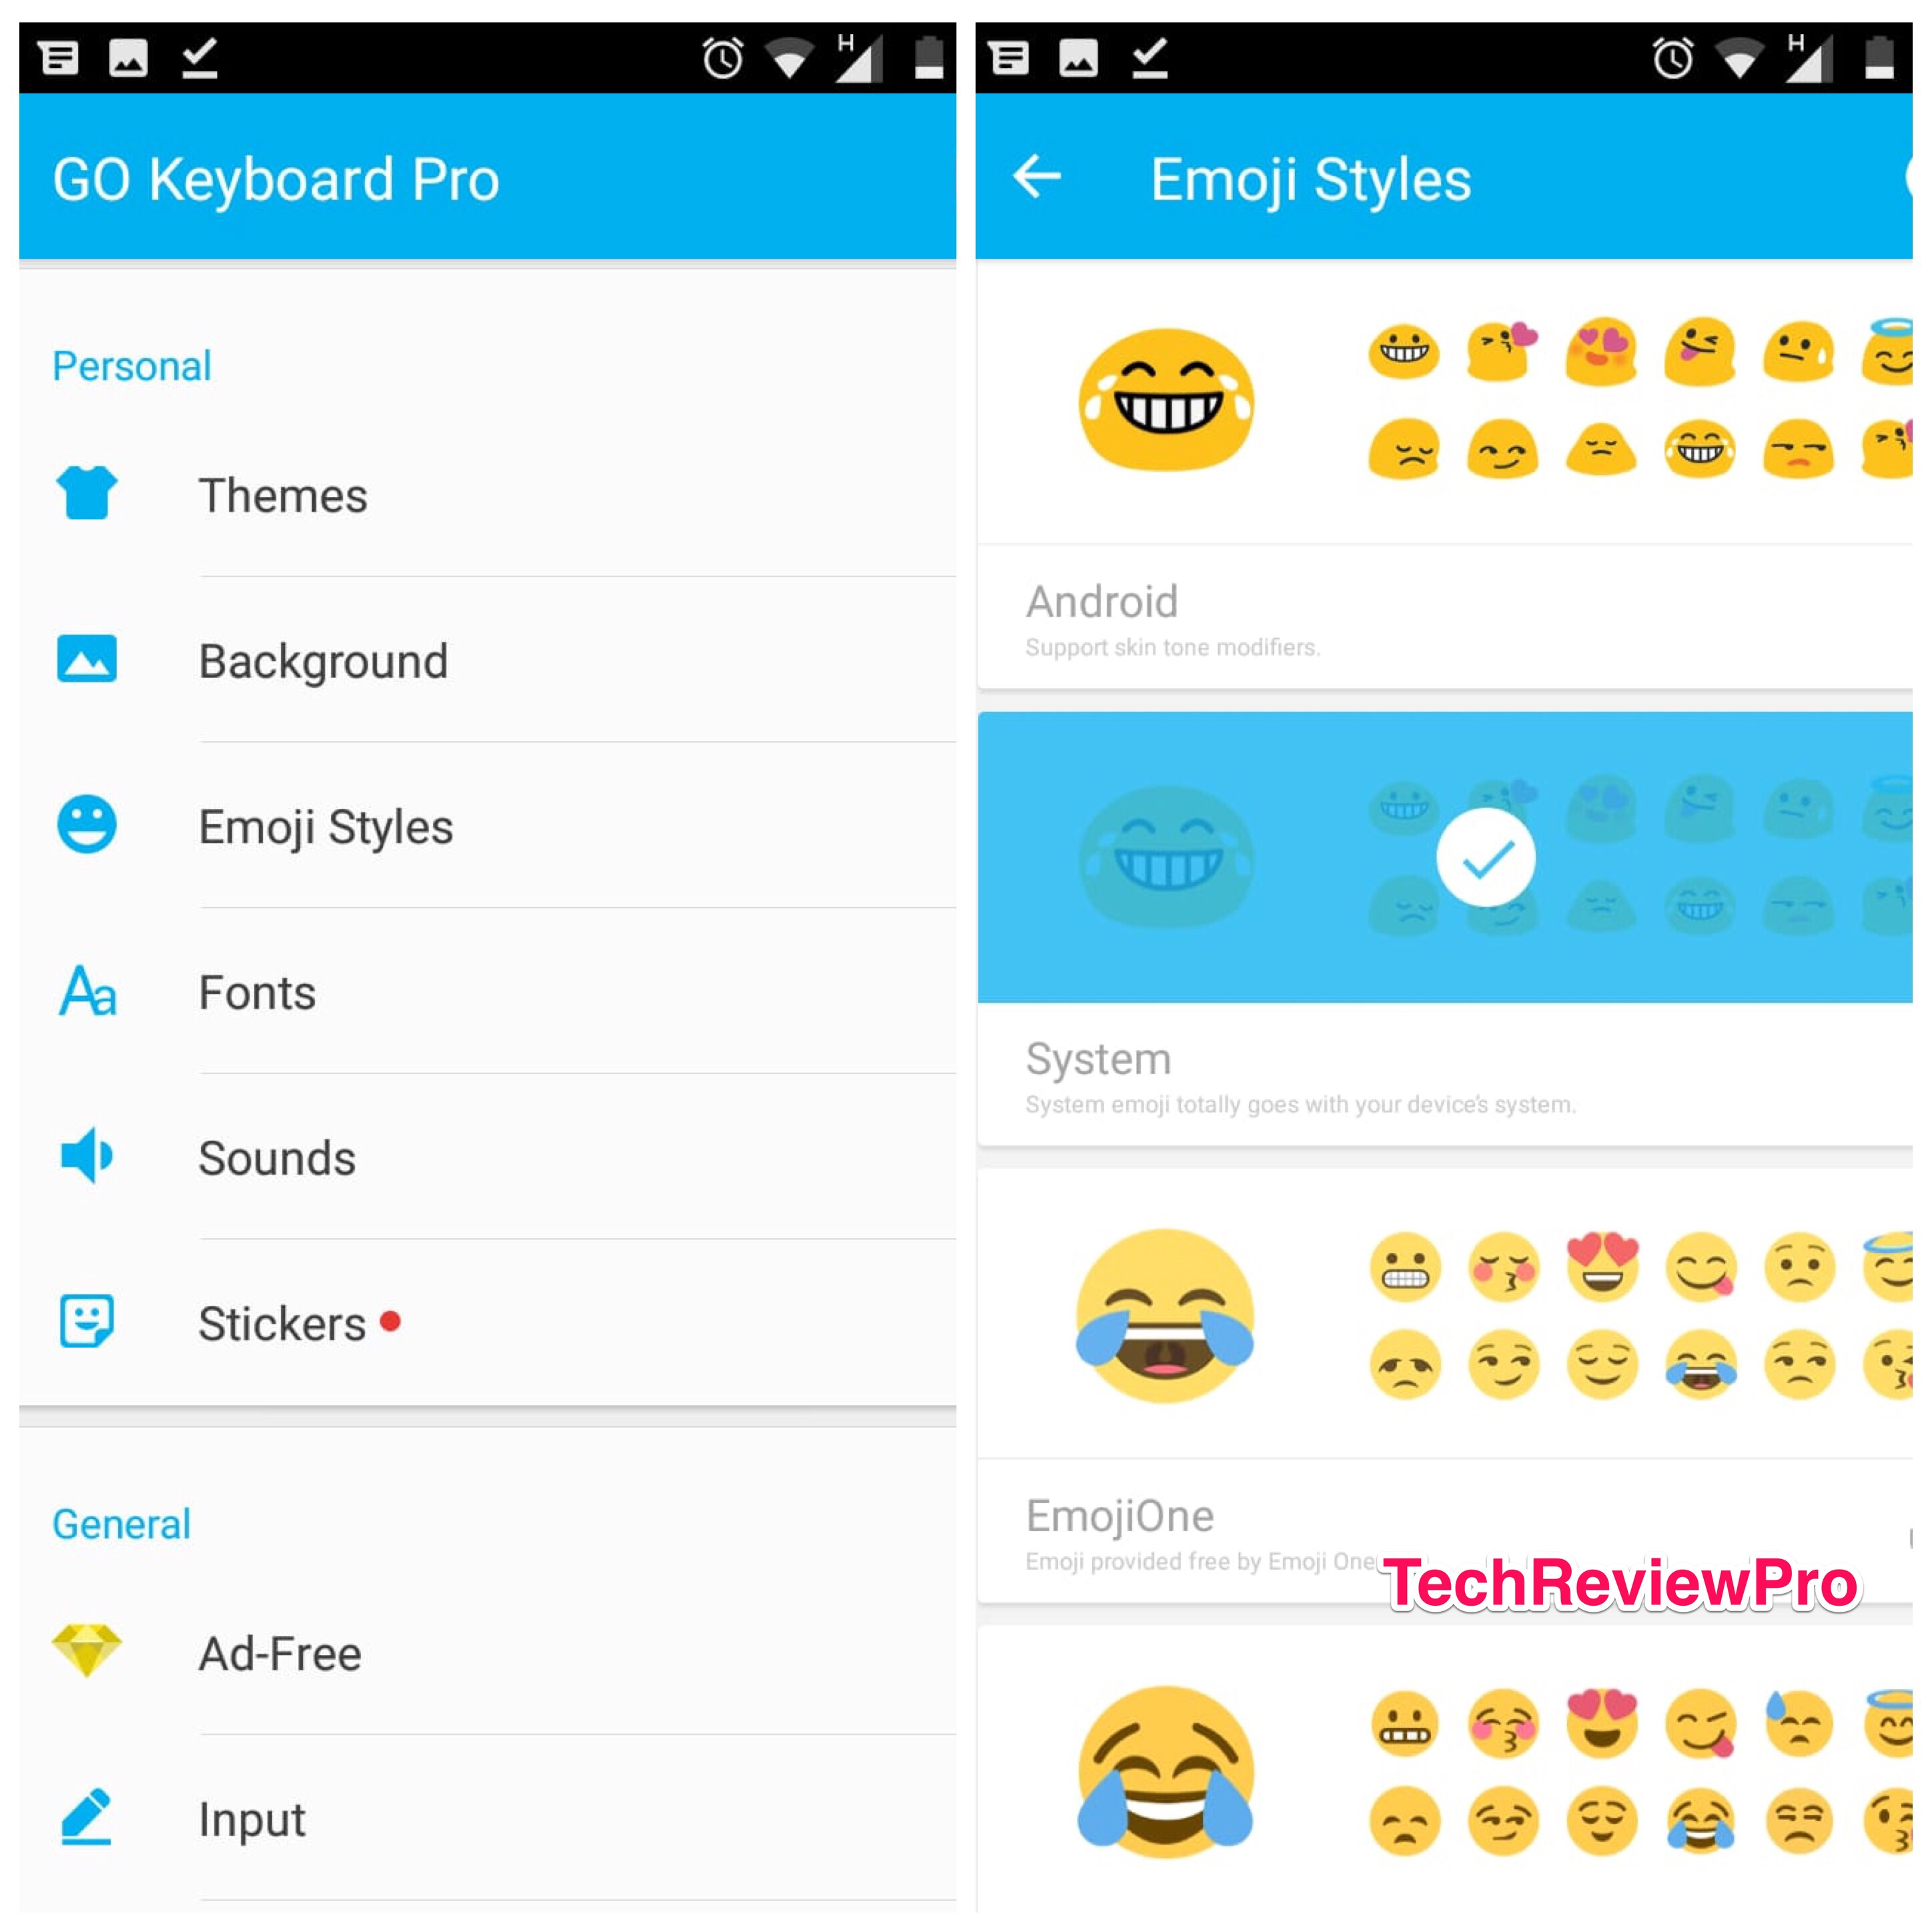 Go Keyboard Pro - Best Keyboards with Emojis for Android - Animated Emoji App